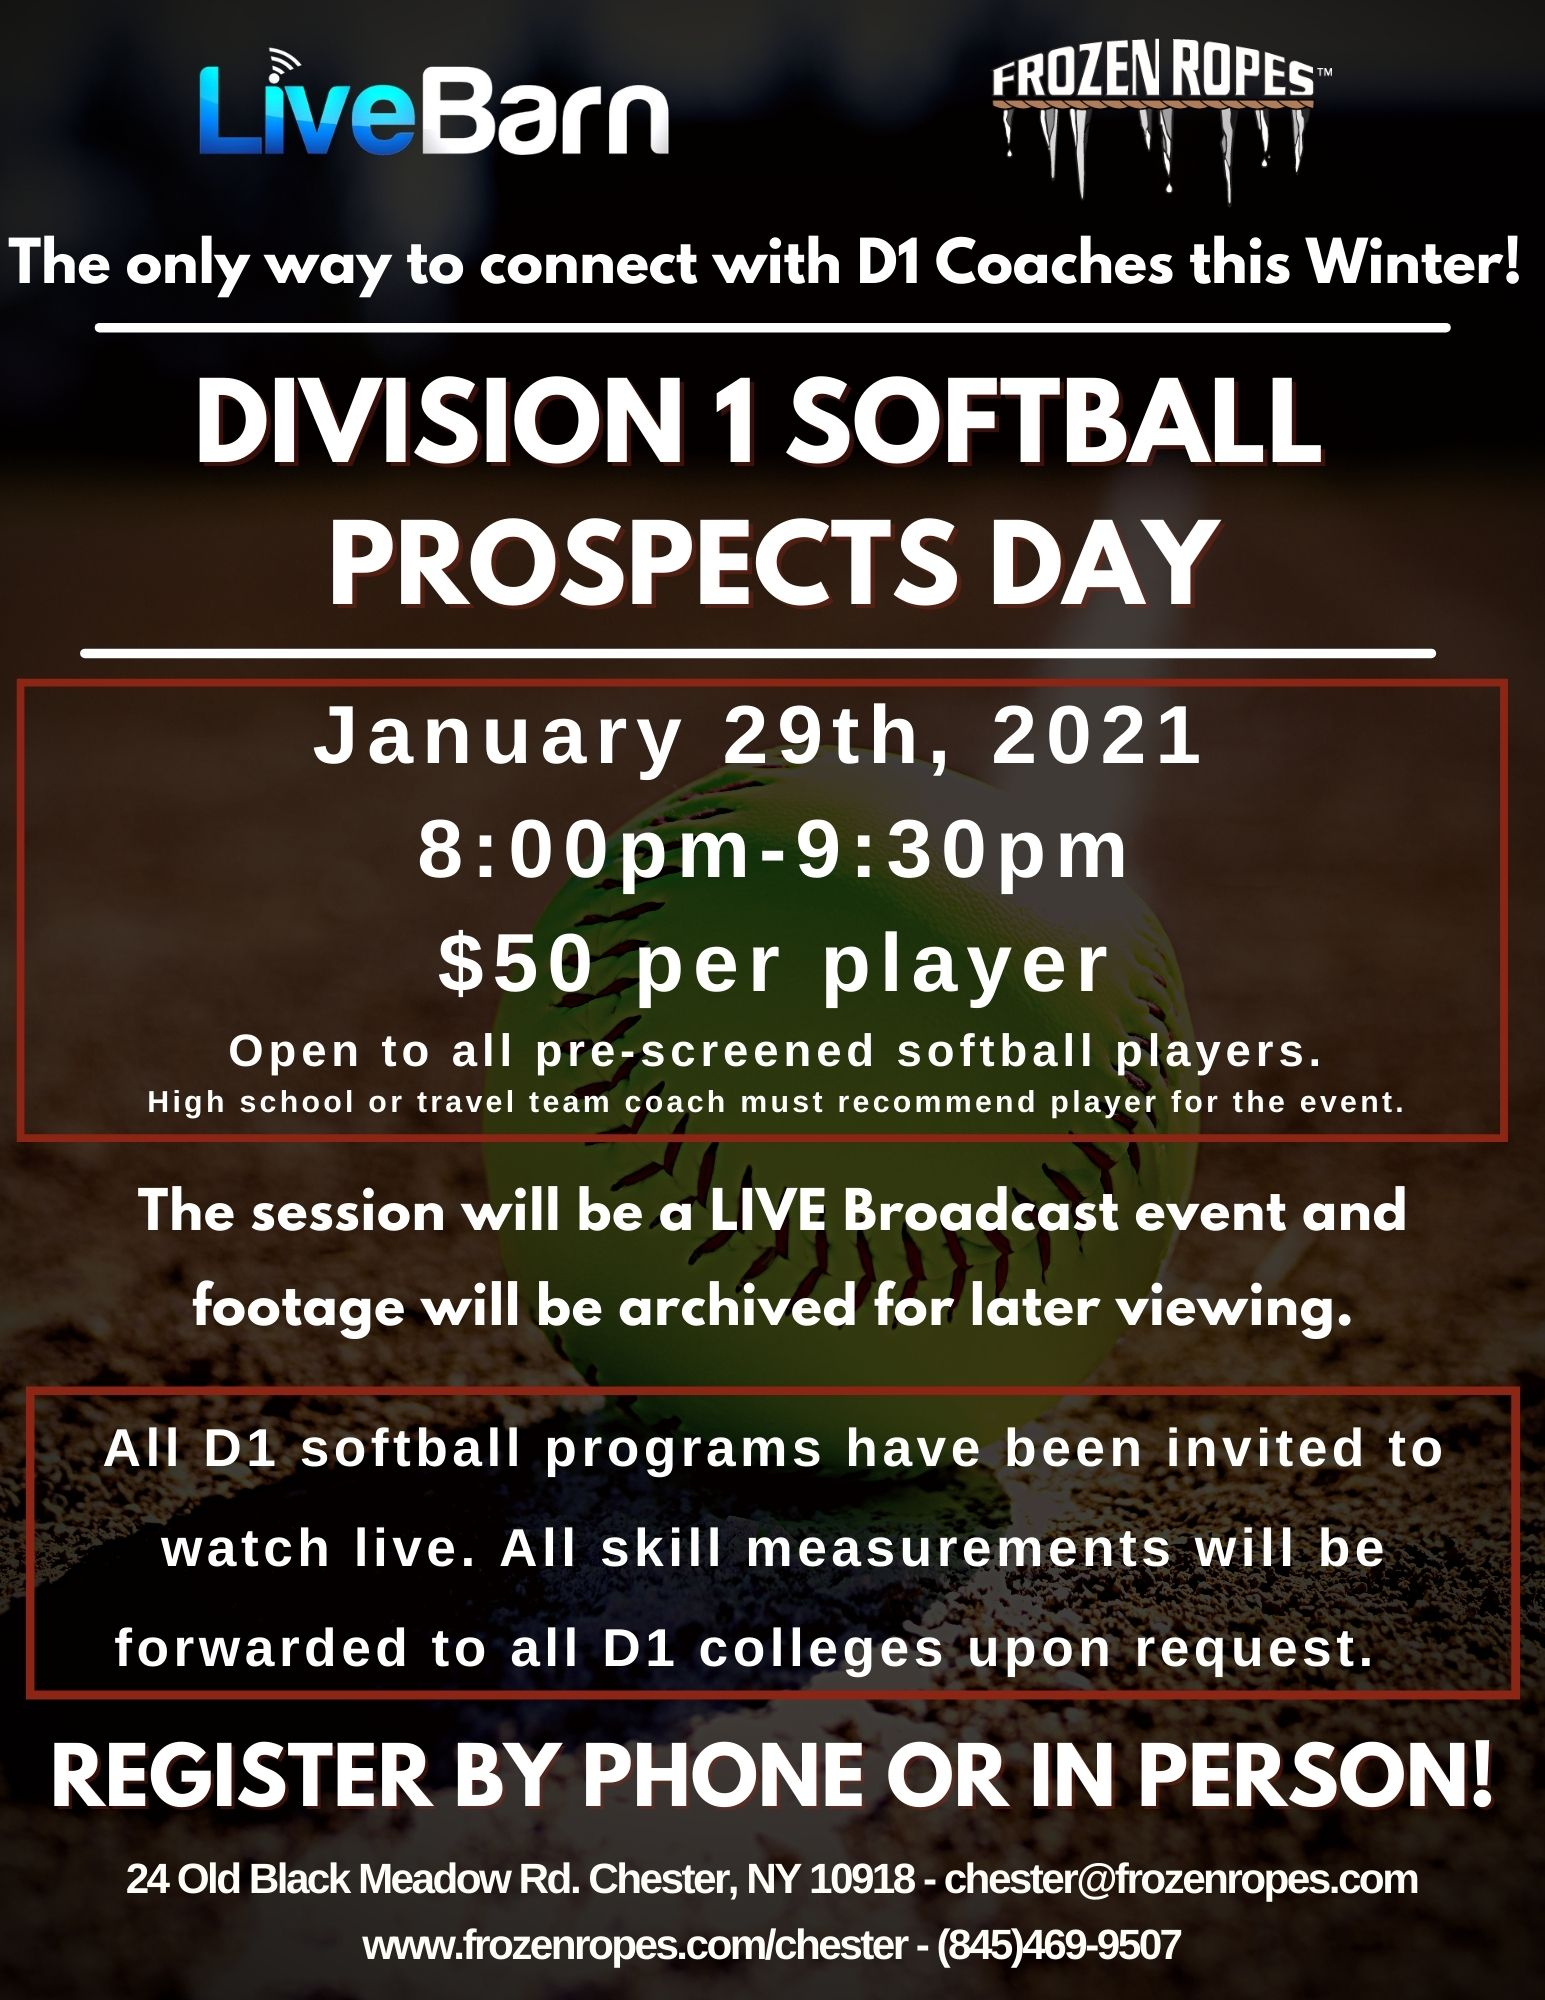 Frozen Ropes D1 Softball Prospects Day College